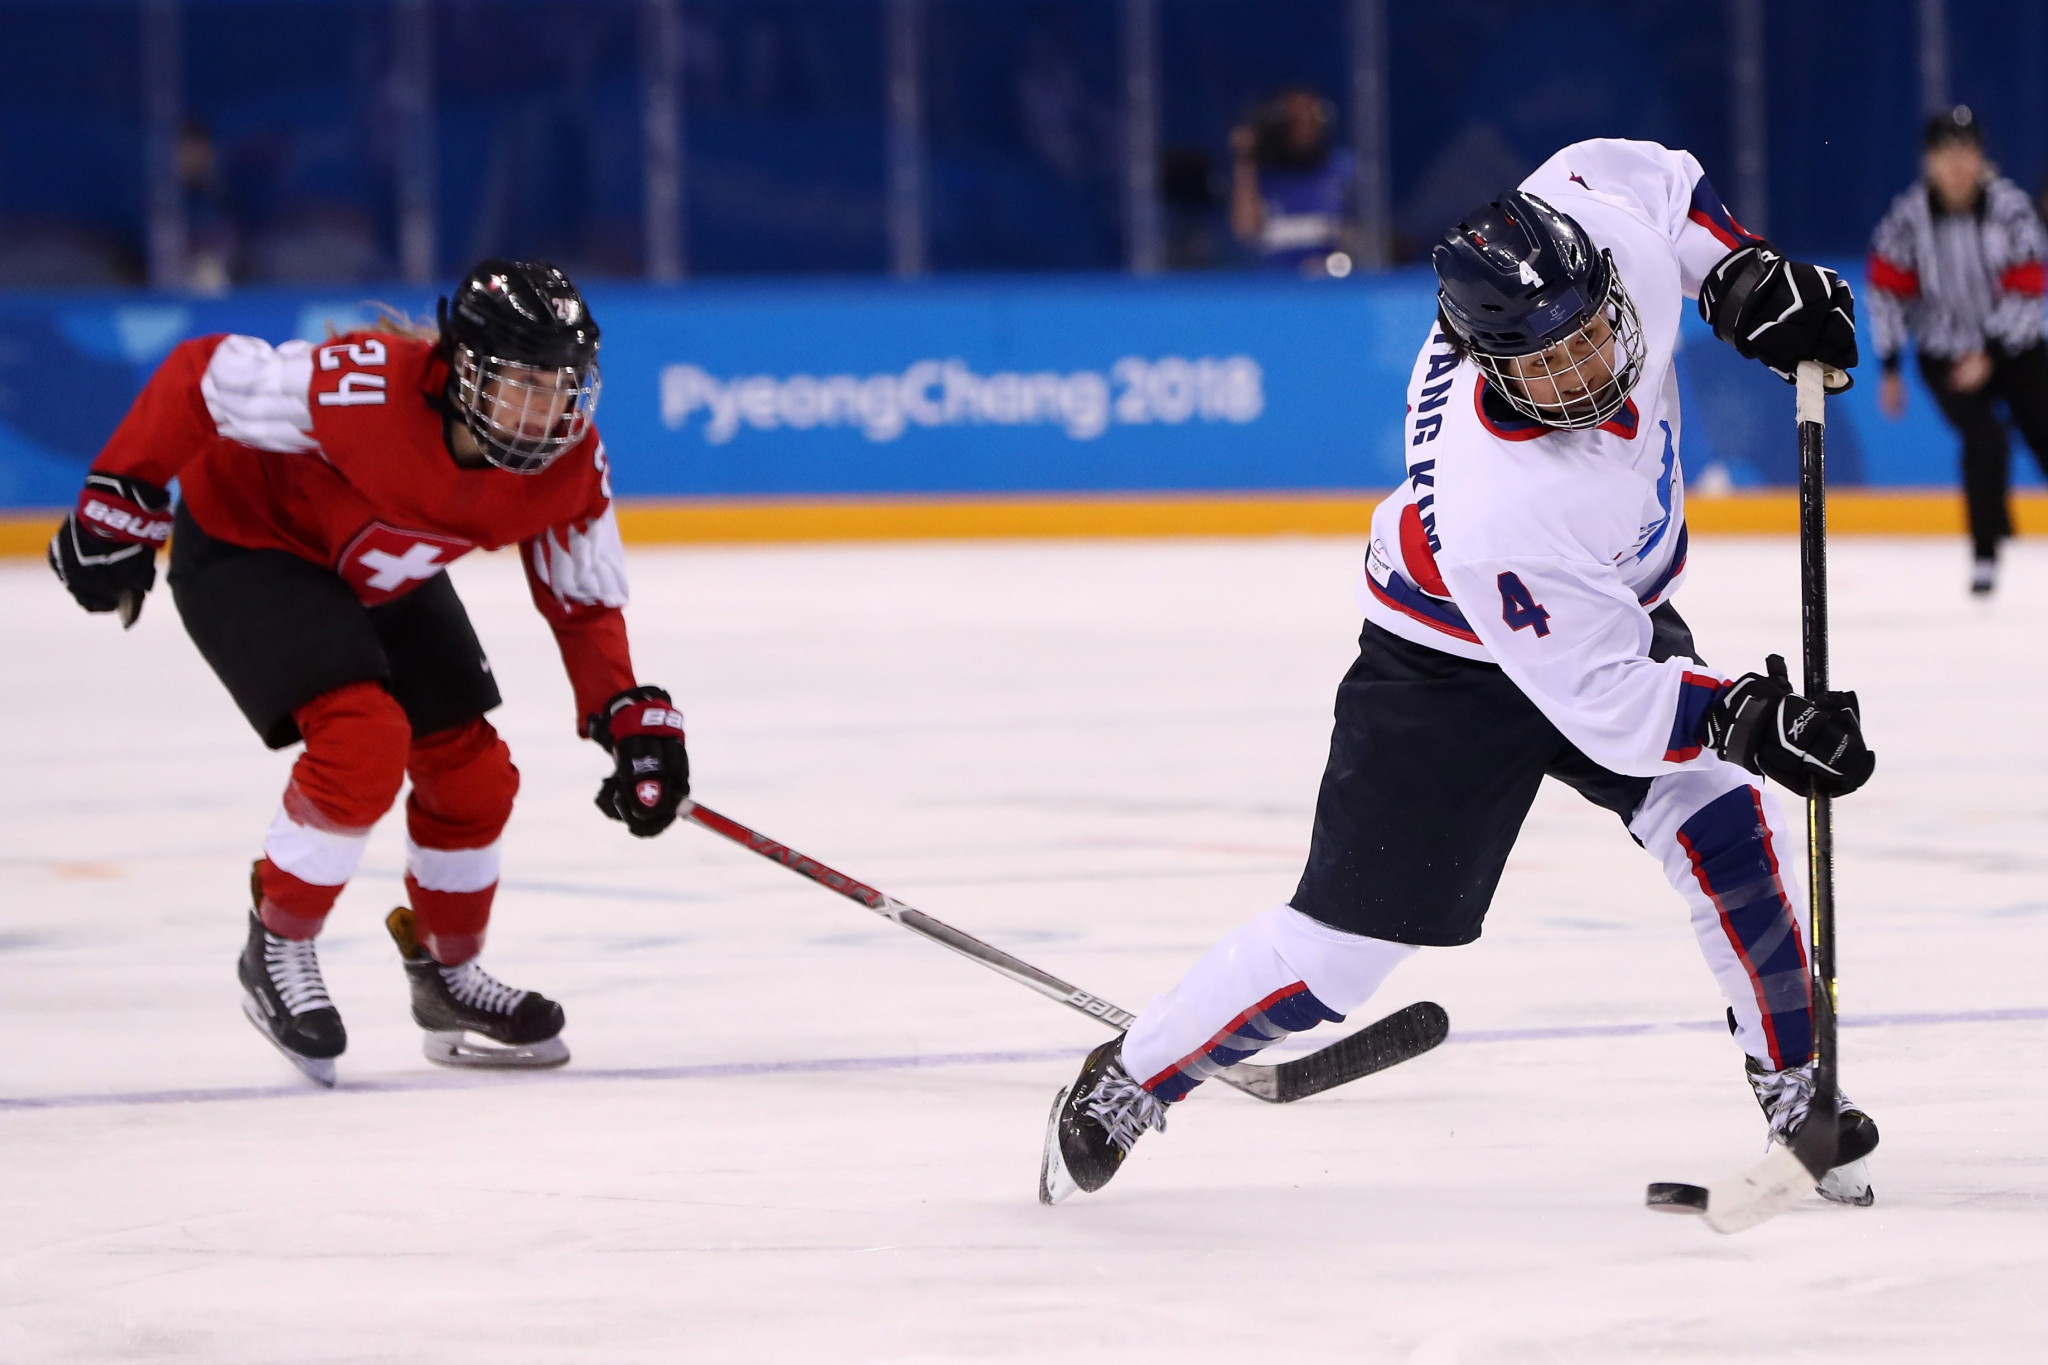 North Korean ice hockey player Un Hyang Kim, right, was secretly cleared after testing positive for a banned substance at Pyeongchang 2018 ©Getty Images